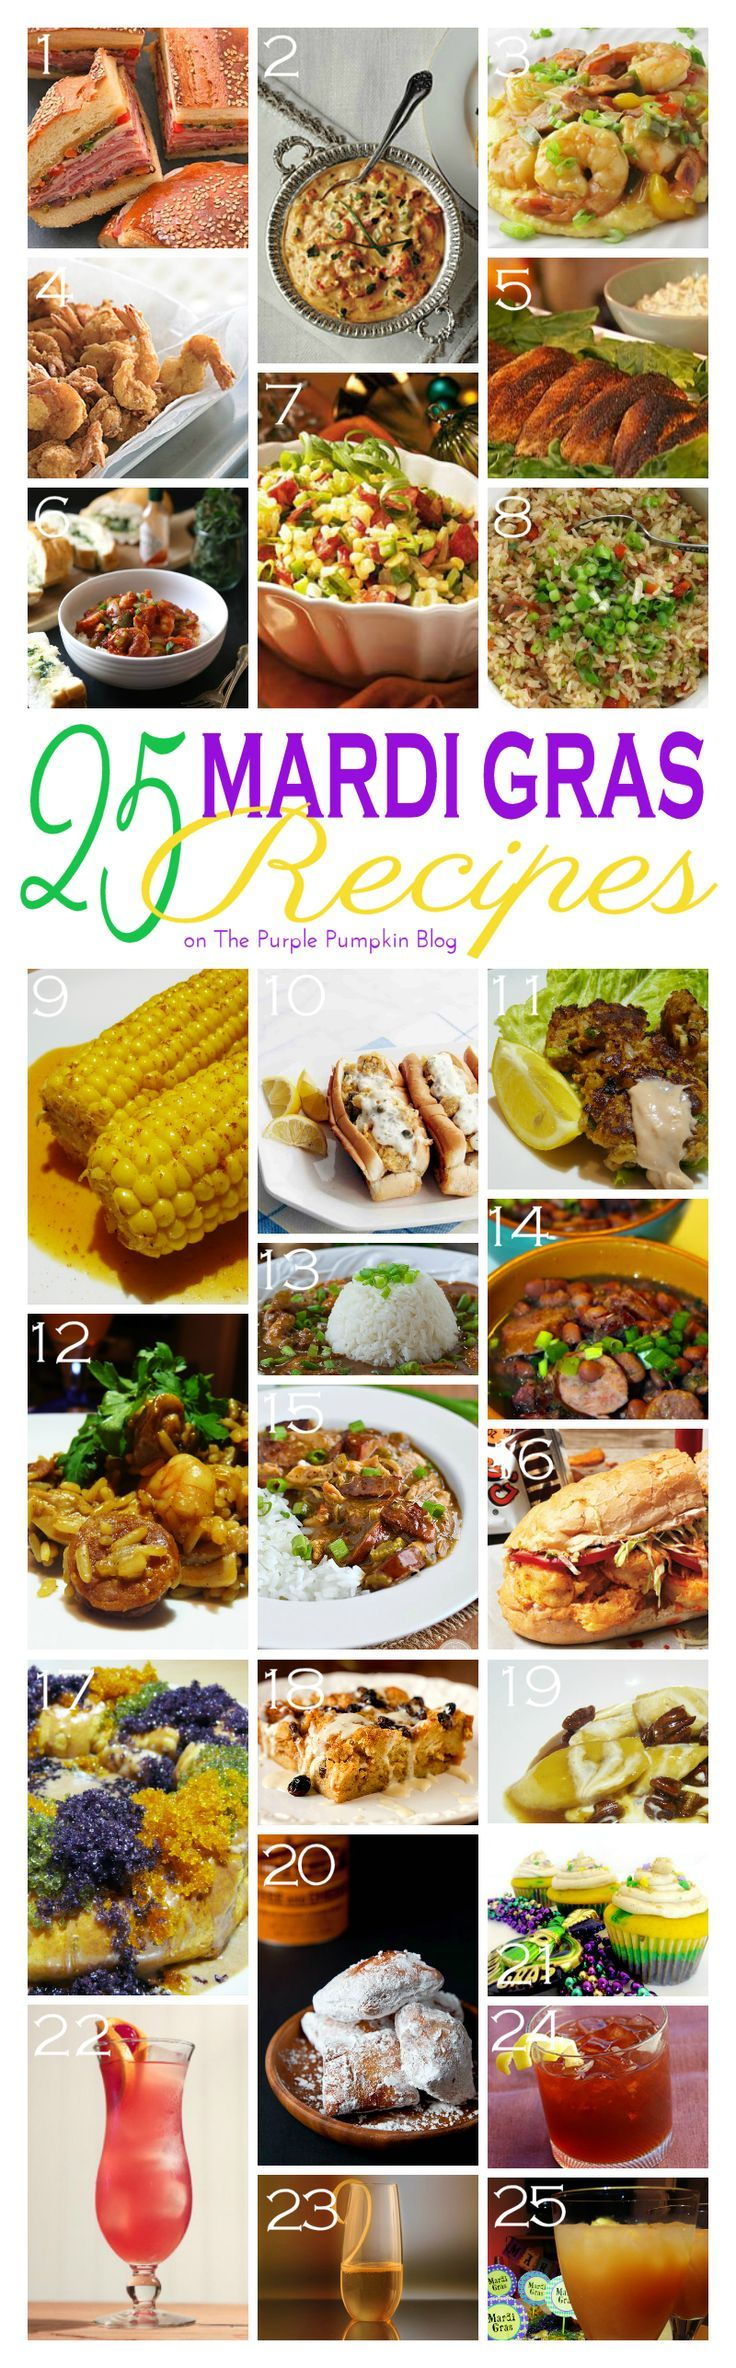 25 Mardi Gras Recipes - lots of great ideas with appetizers, entrees, desserts and cocktails! Saving this for Mardi Gras party time!